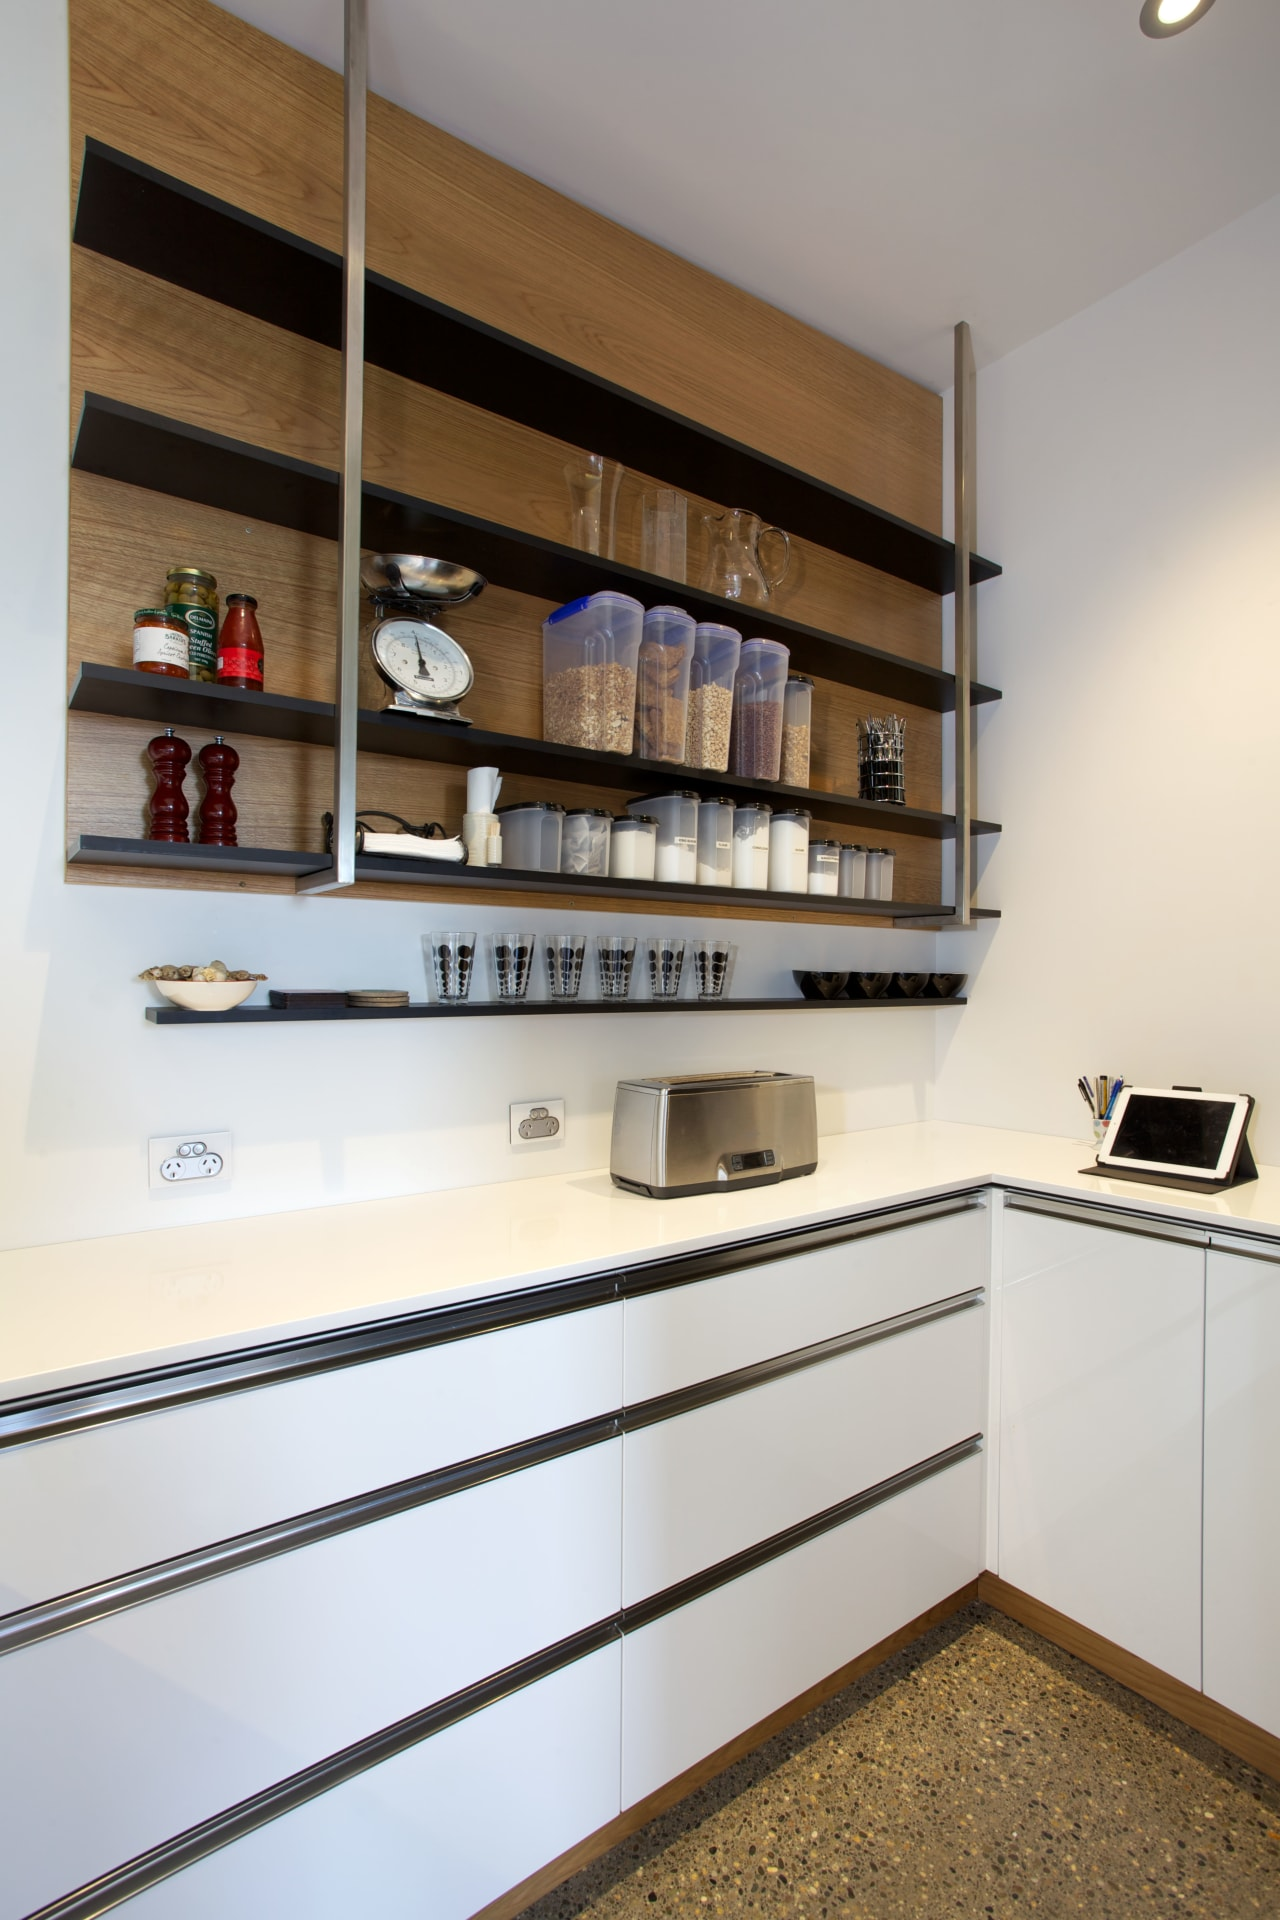 This scullery is an extension of a award-winning cabinetry, furniture, interior design, kitchen, shelf, shelving, white